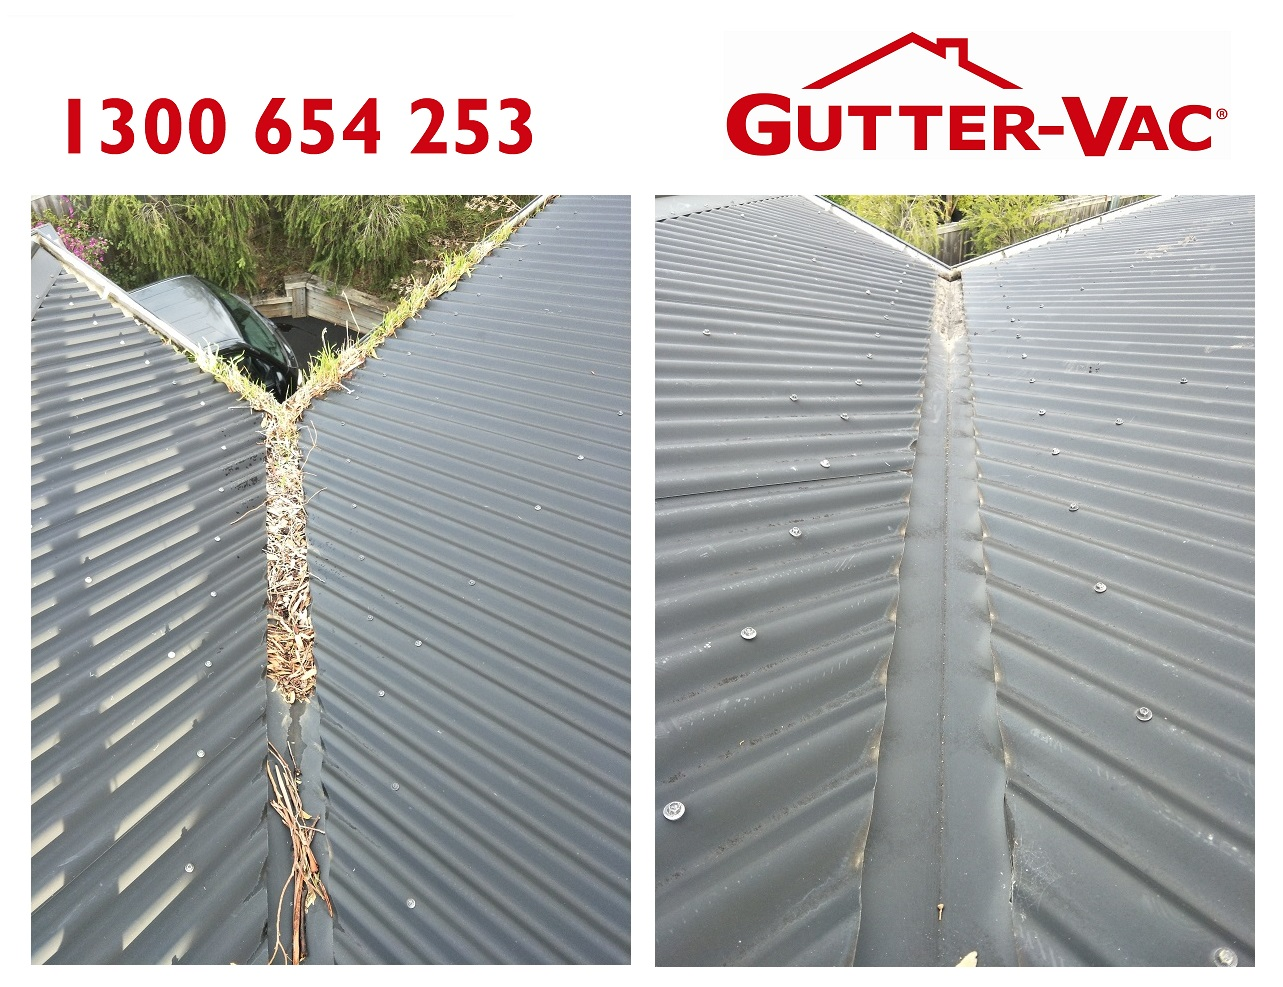 Valleys Can Collect As Much Debris As Gutters Gutter Vac